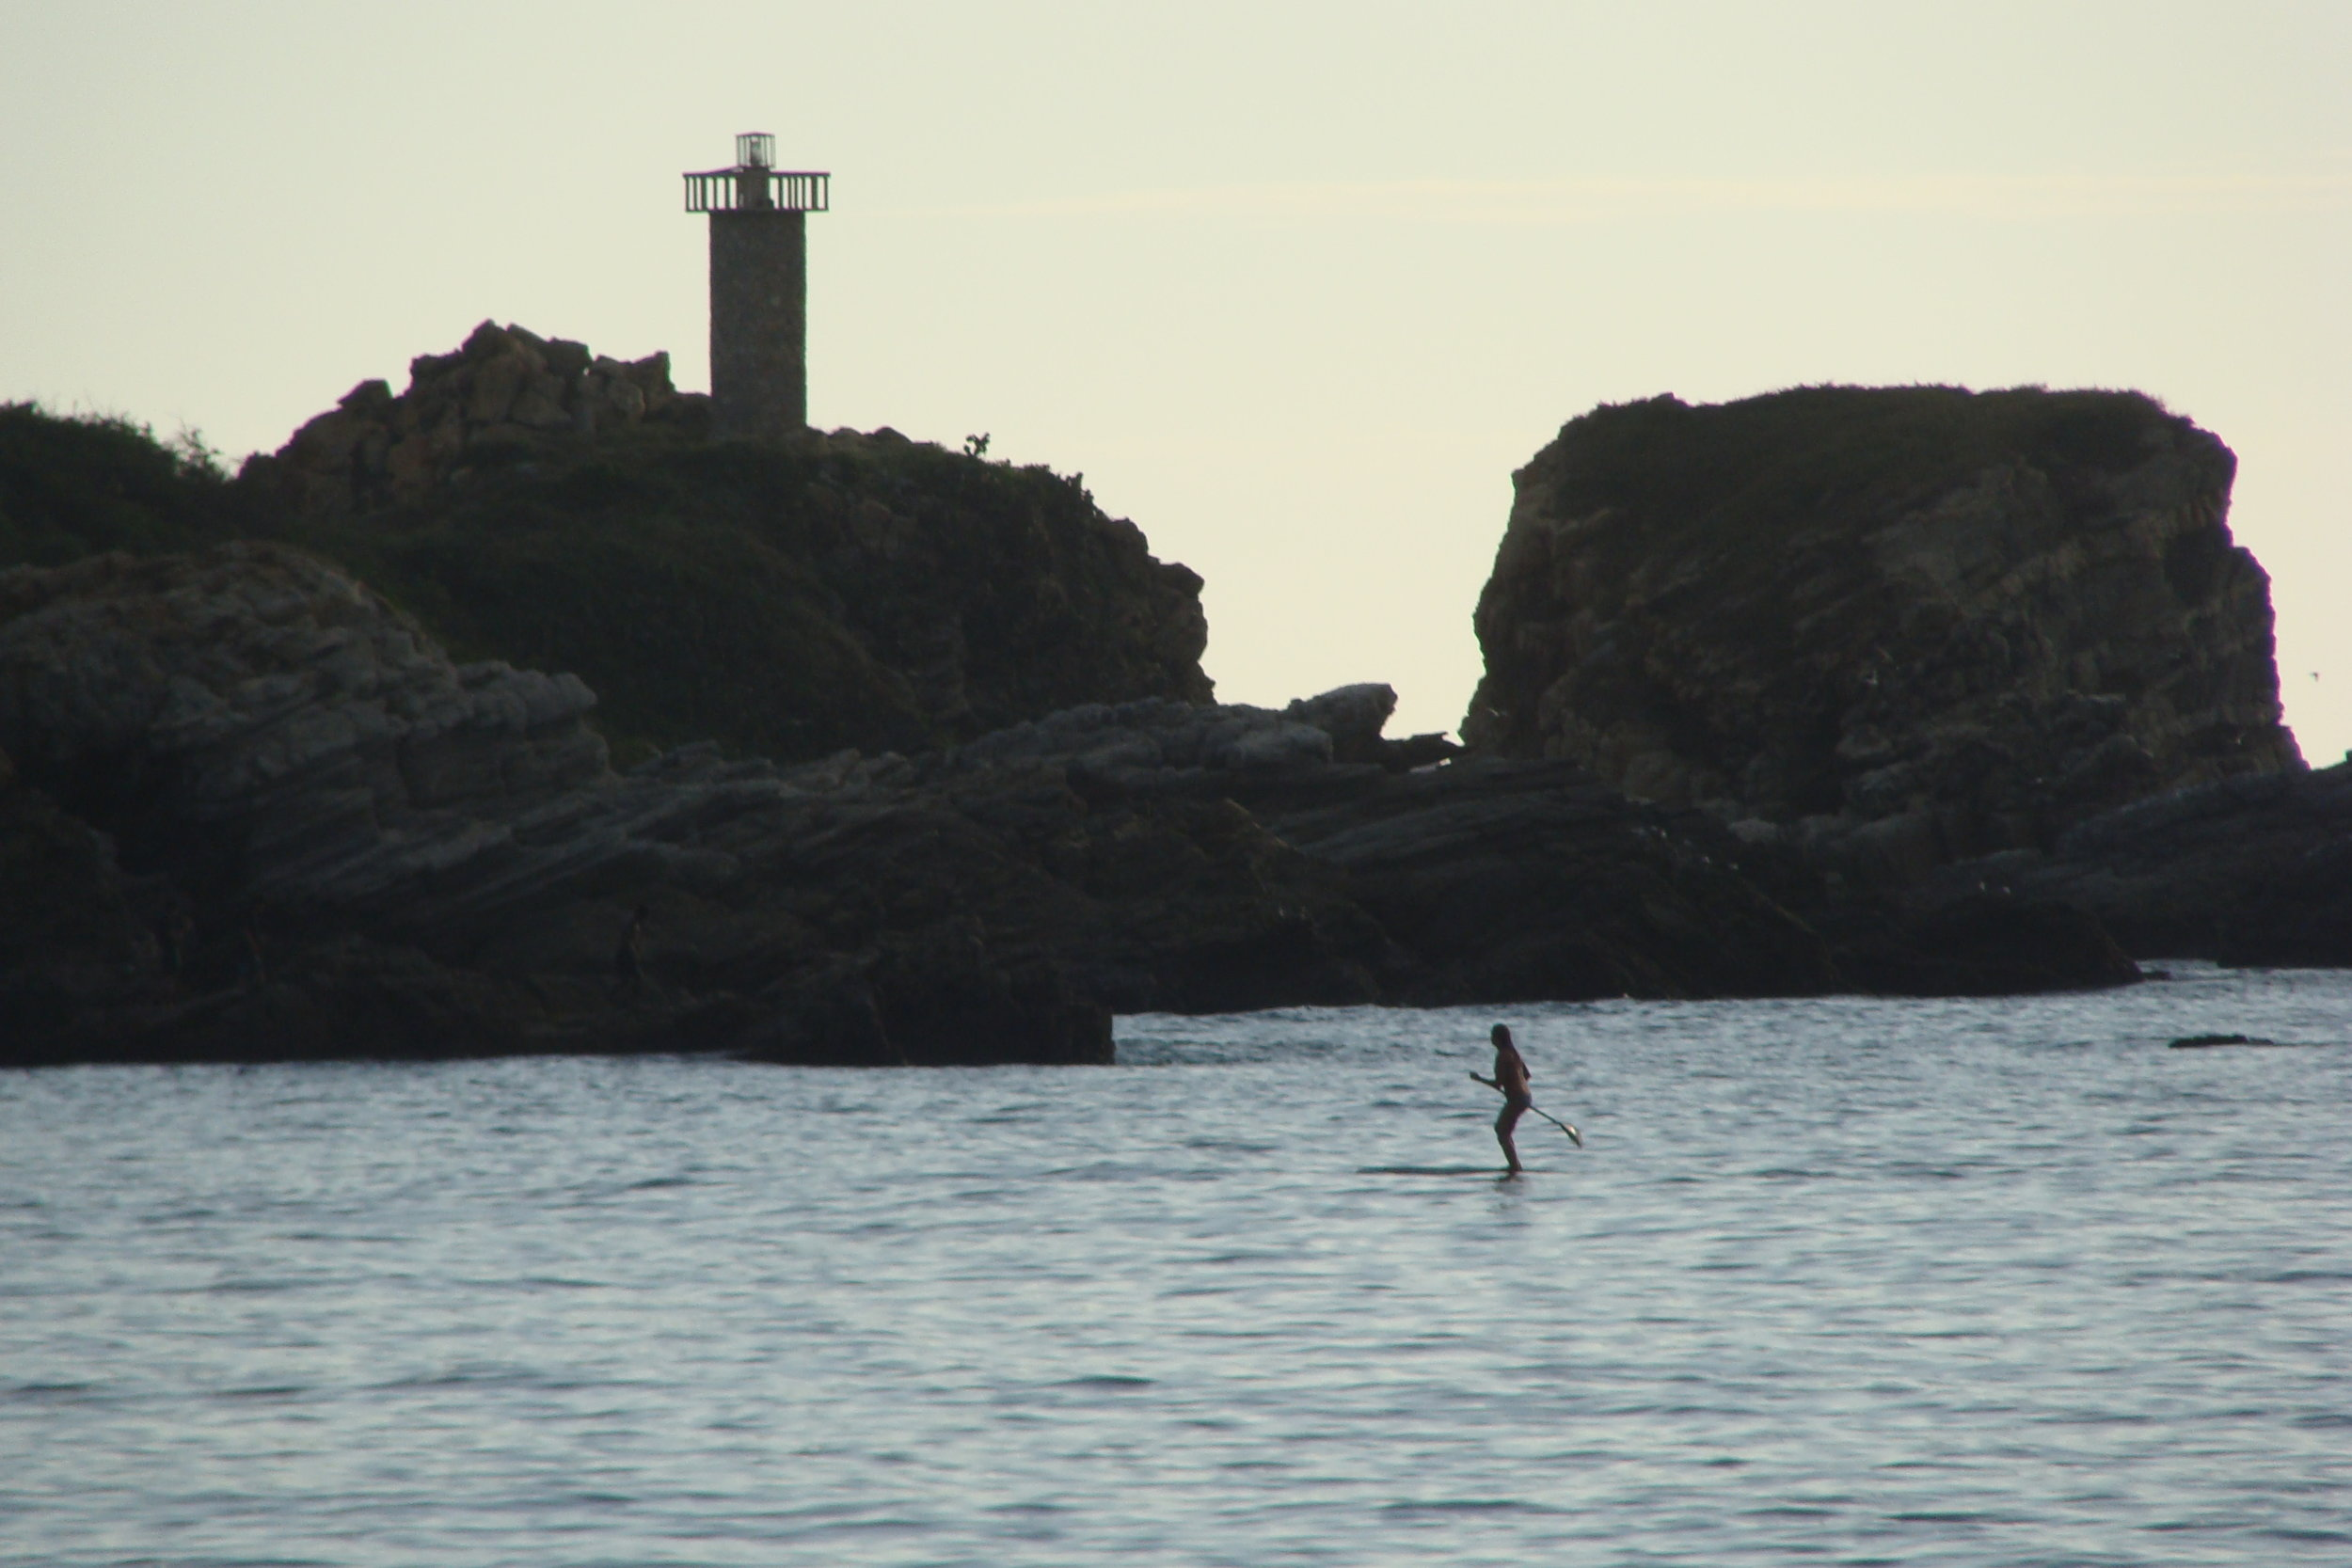 - Your SUP guide has 20+ years of experience in the waters of Puerto Escondido and will paddle along side you as you explore the Pacific Ocean or local river